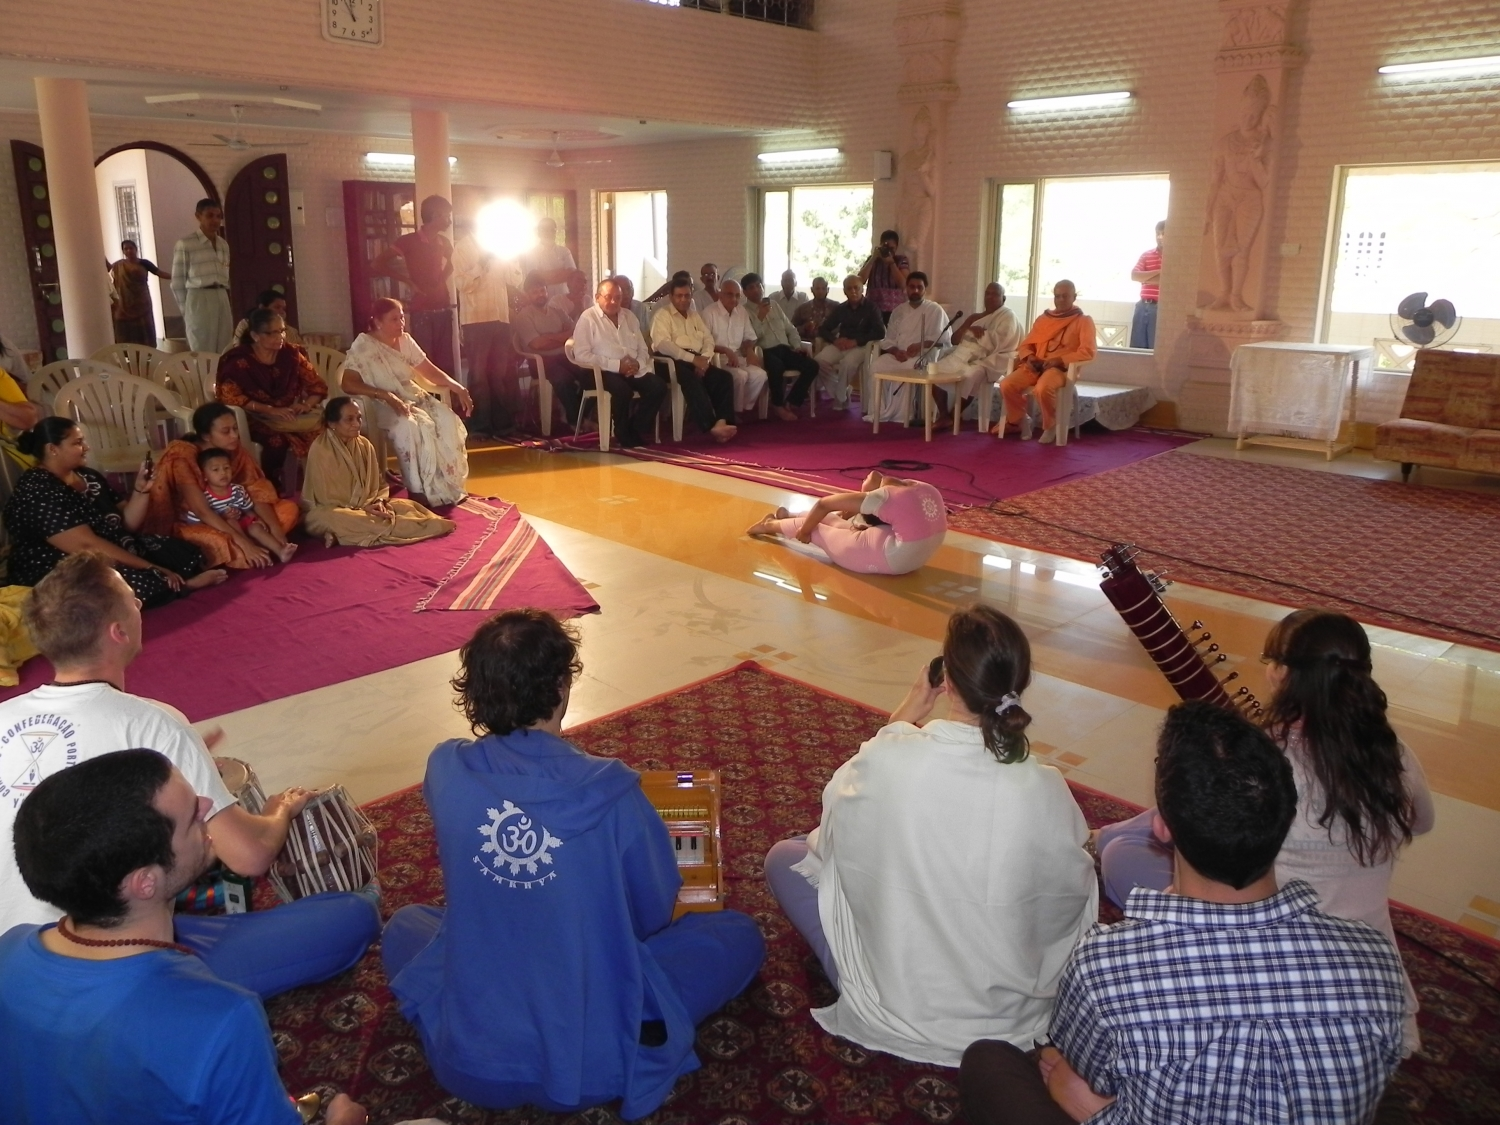 Meeting of H.H. Jagat Guru Amrta Súryánanda Mahá Rája with Shrí Svámin  Munishri Kirtichandrají, Founder of  Shantiniketan Áshrama - Valsad, India – 2011